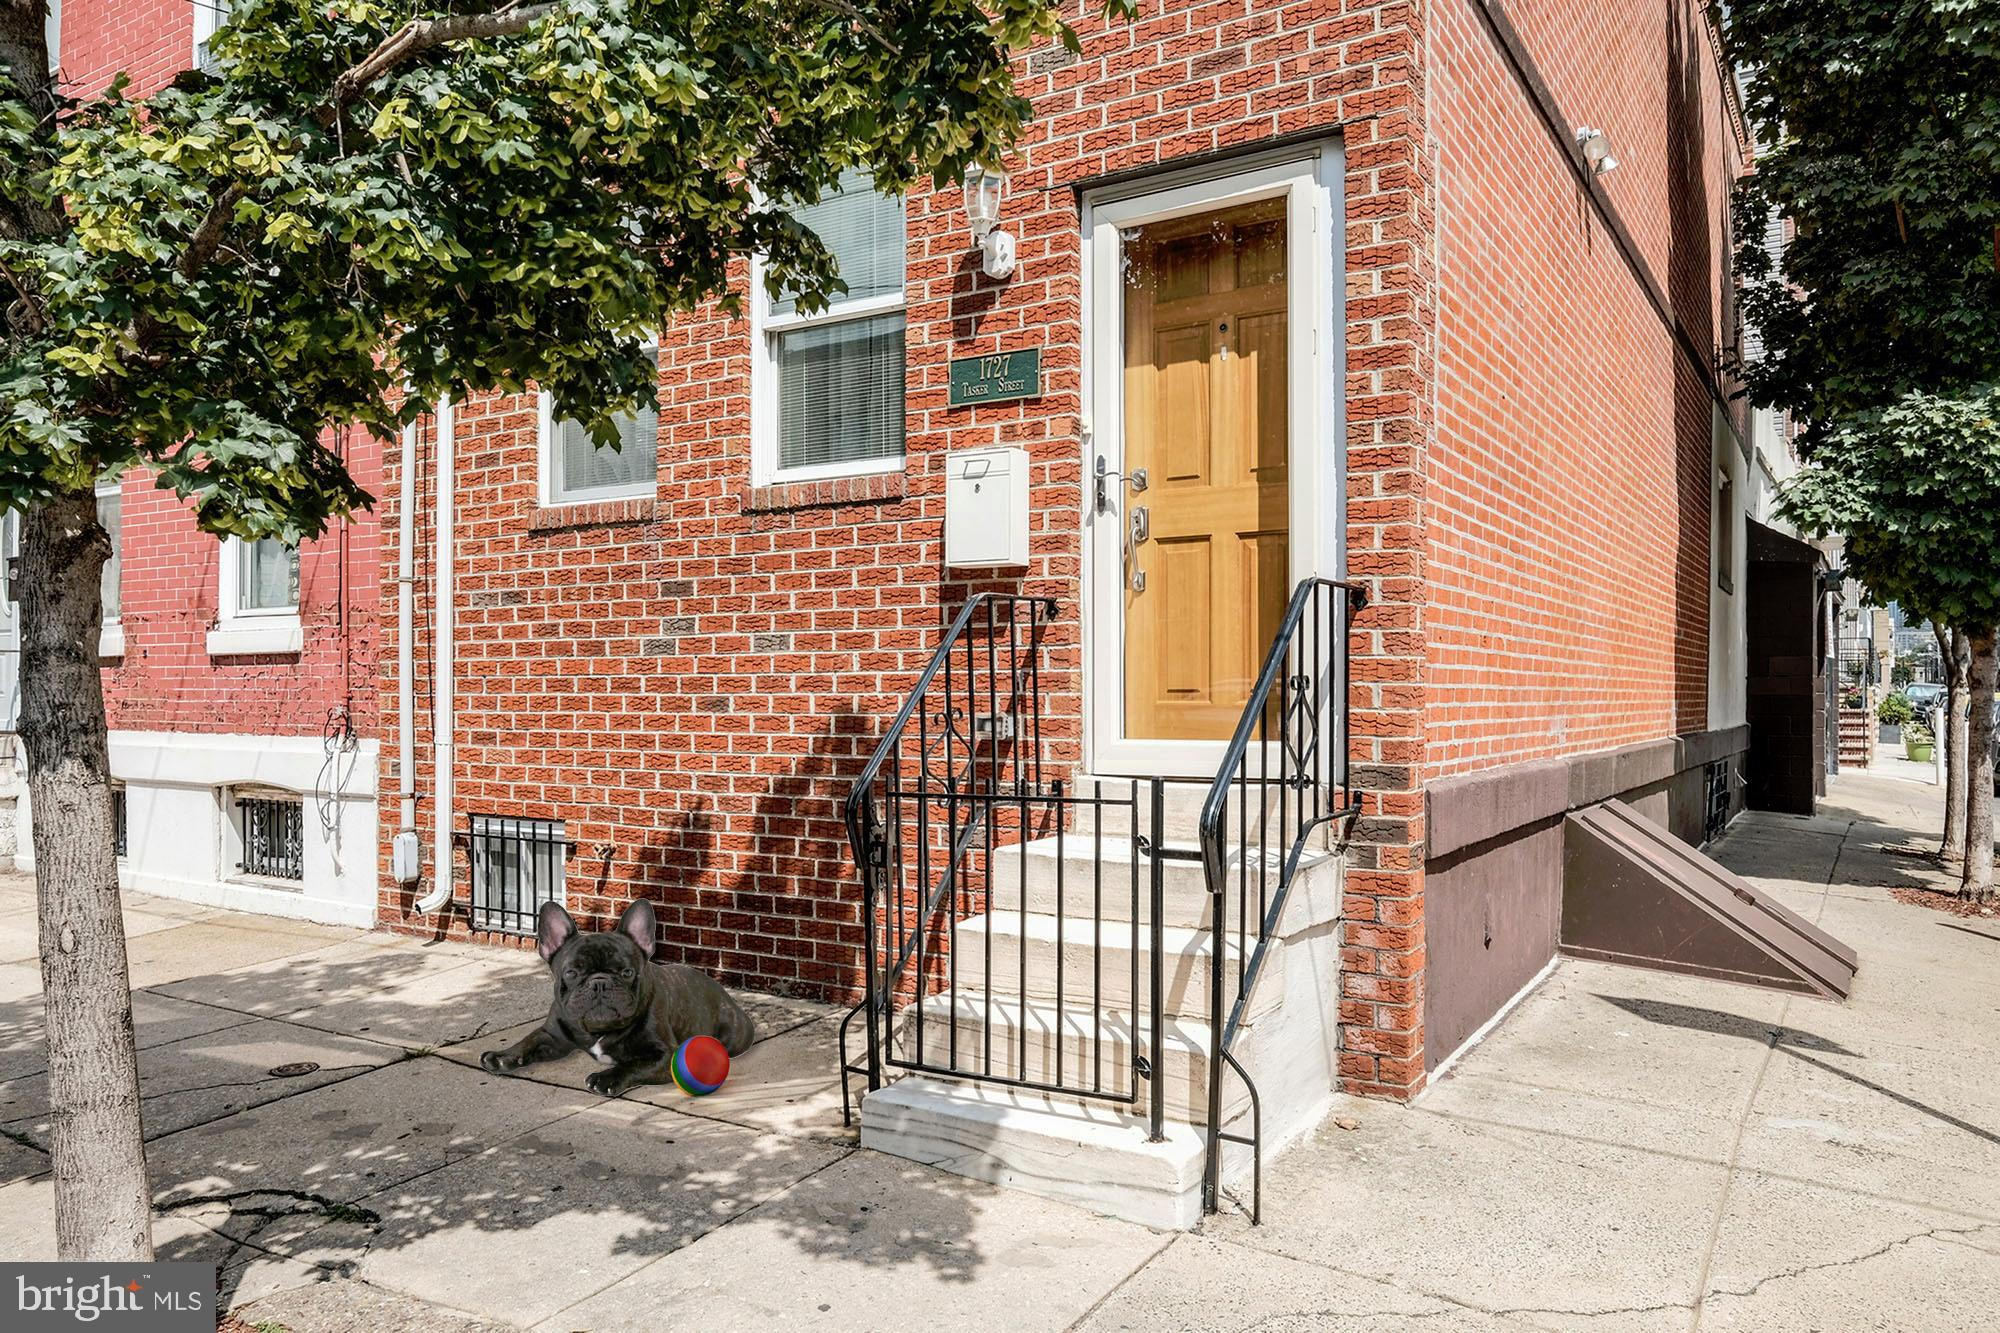 Must see 3 bedroom NEWLY renovated home with HARDWOOD floors throughout, and THREE CAR GARAGE PARKING. This tastefully done renovation exudes warmth and charm from the minute you enter. Gracious and open living and dining area all open to a stunning kitchen with custom GRANITE counter tops, and stainless steel appliances, exotic MARBLE flooring, and awesome NATURAL SUN LIGHT. There is also a half bath on this level. On the second floor of this light filled residence you will find an enormous master bedroom with a walk in closet, and stylish MARBLE & TILE bath, full laundry room, and a designated deck area just waiting to be finished. On the third floor of this sun splashed home you will find two additional bedrooms and a lovely tile bath. The basement is also finished ideal for a ZOOM ROOM, DEN, or HOME GYM. There is also a full bath on this level. This corner property in the heart of NEWBOLD has it all.